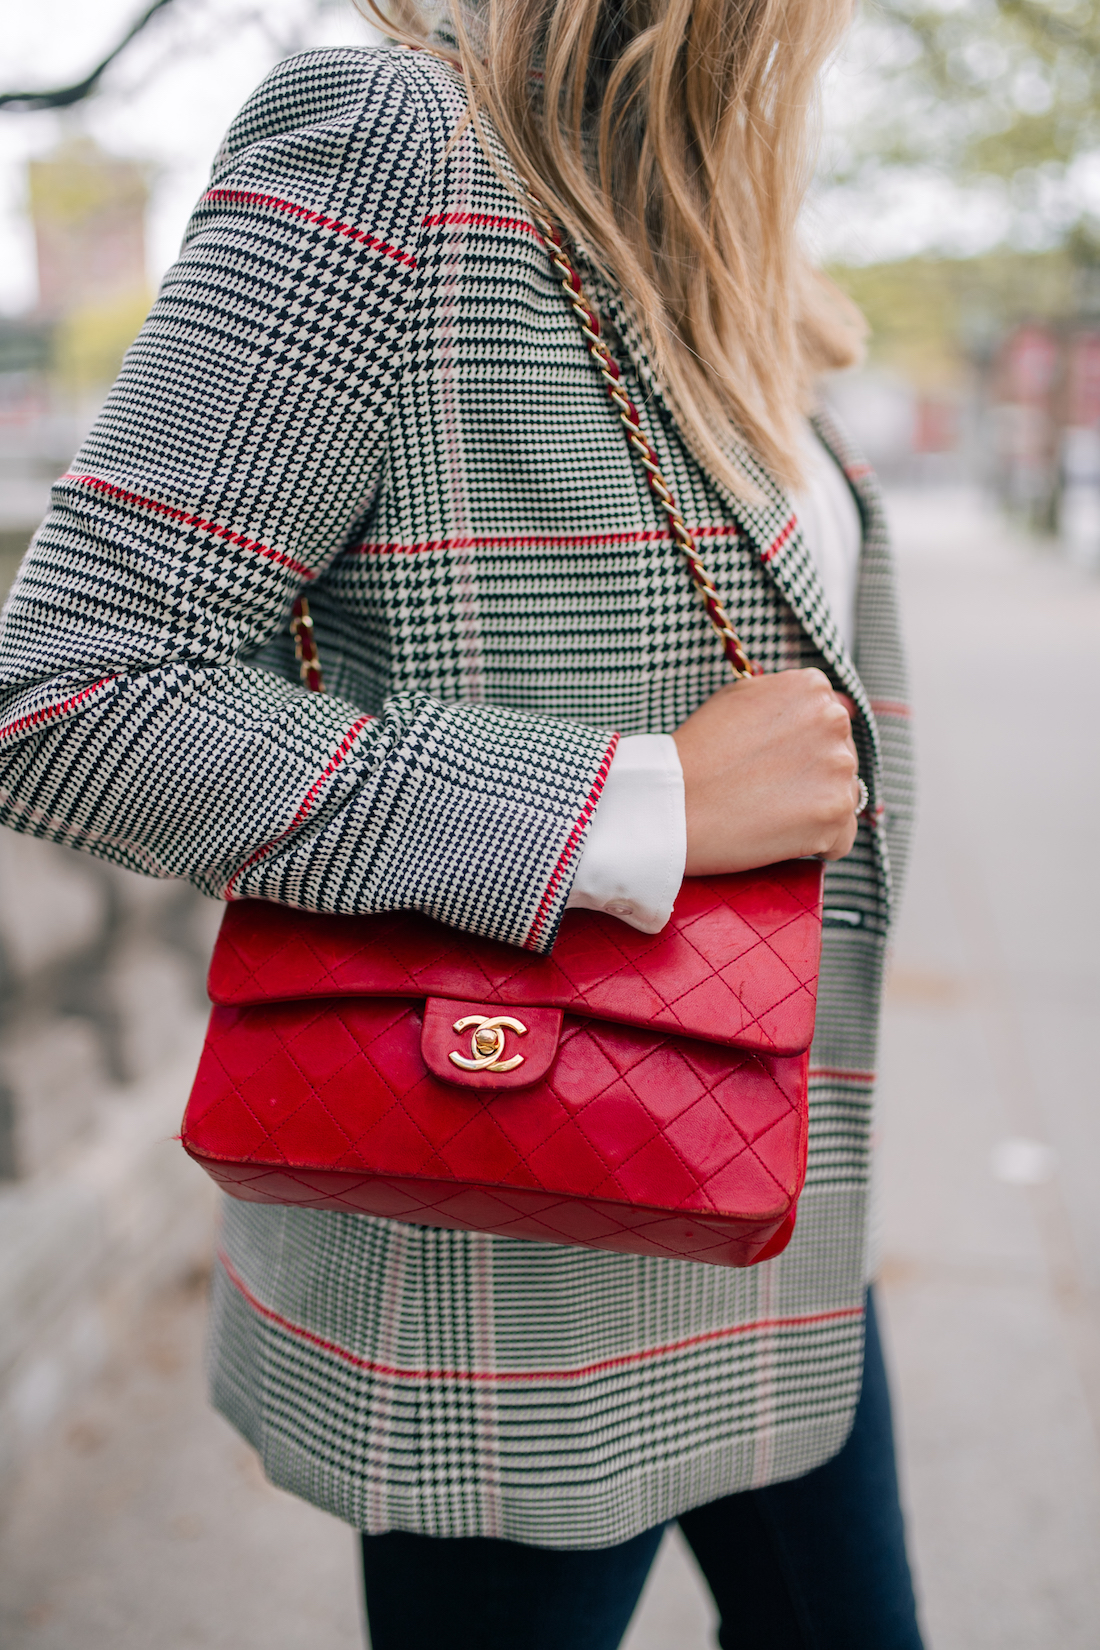 Red Chanel Bag featured